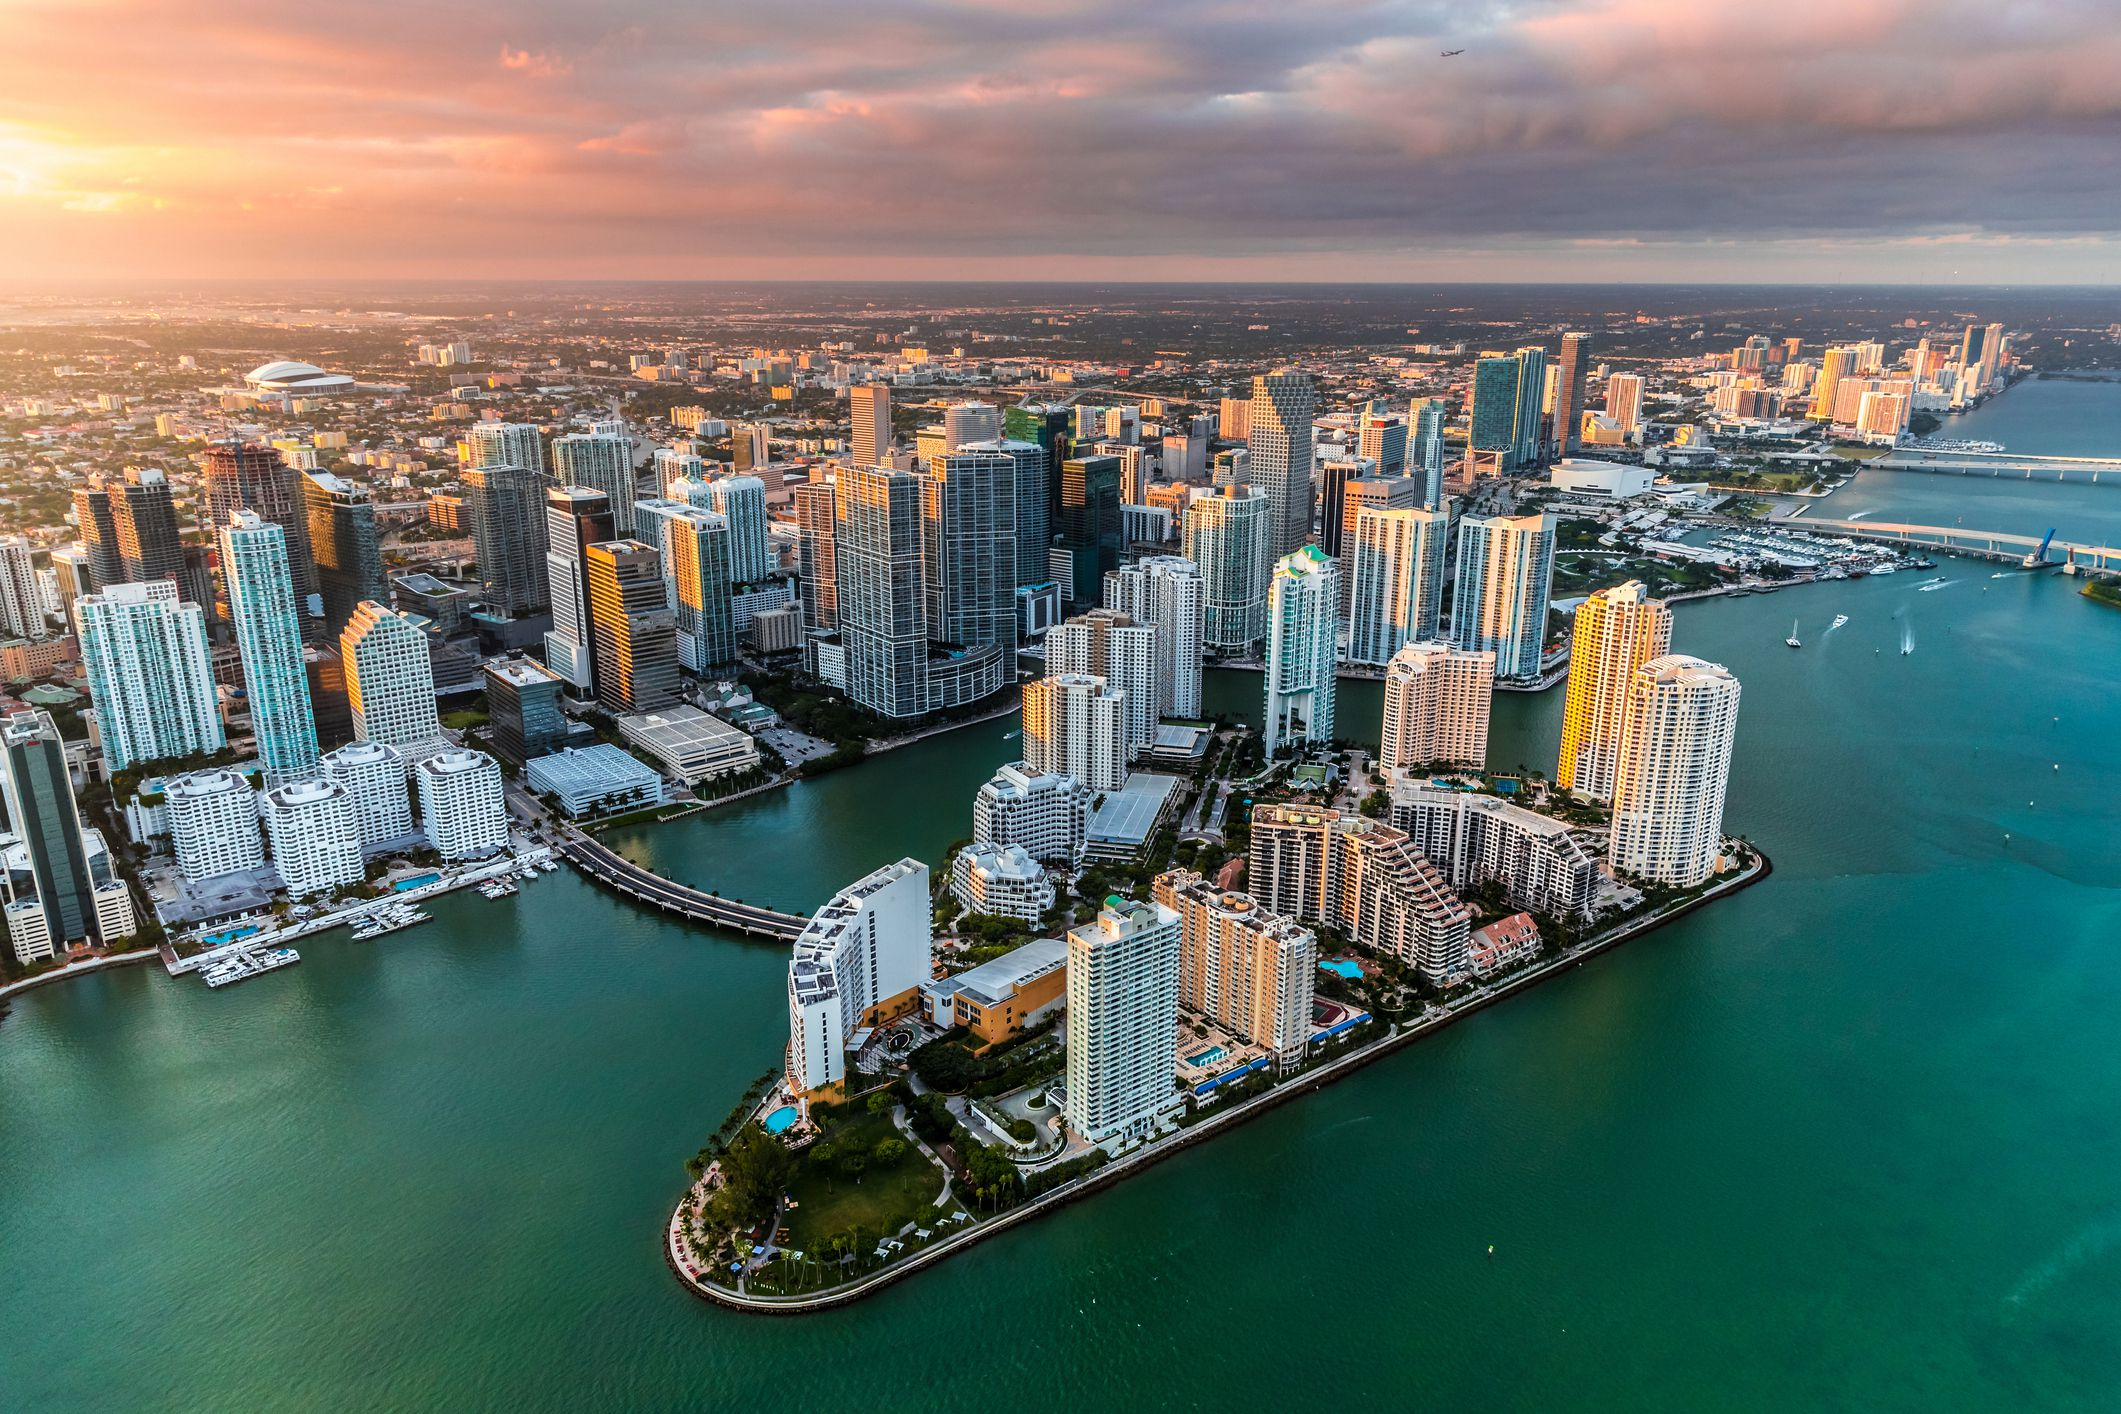 The 10 Best Miami Hotels of 2019